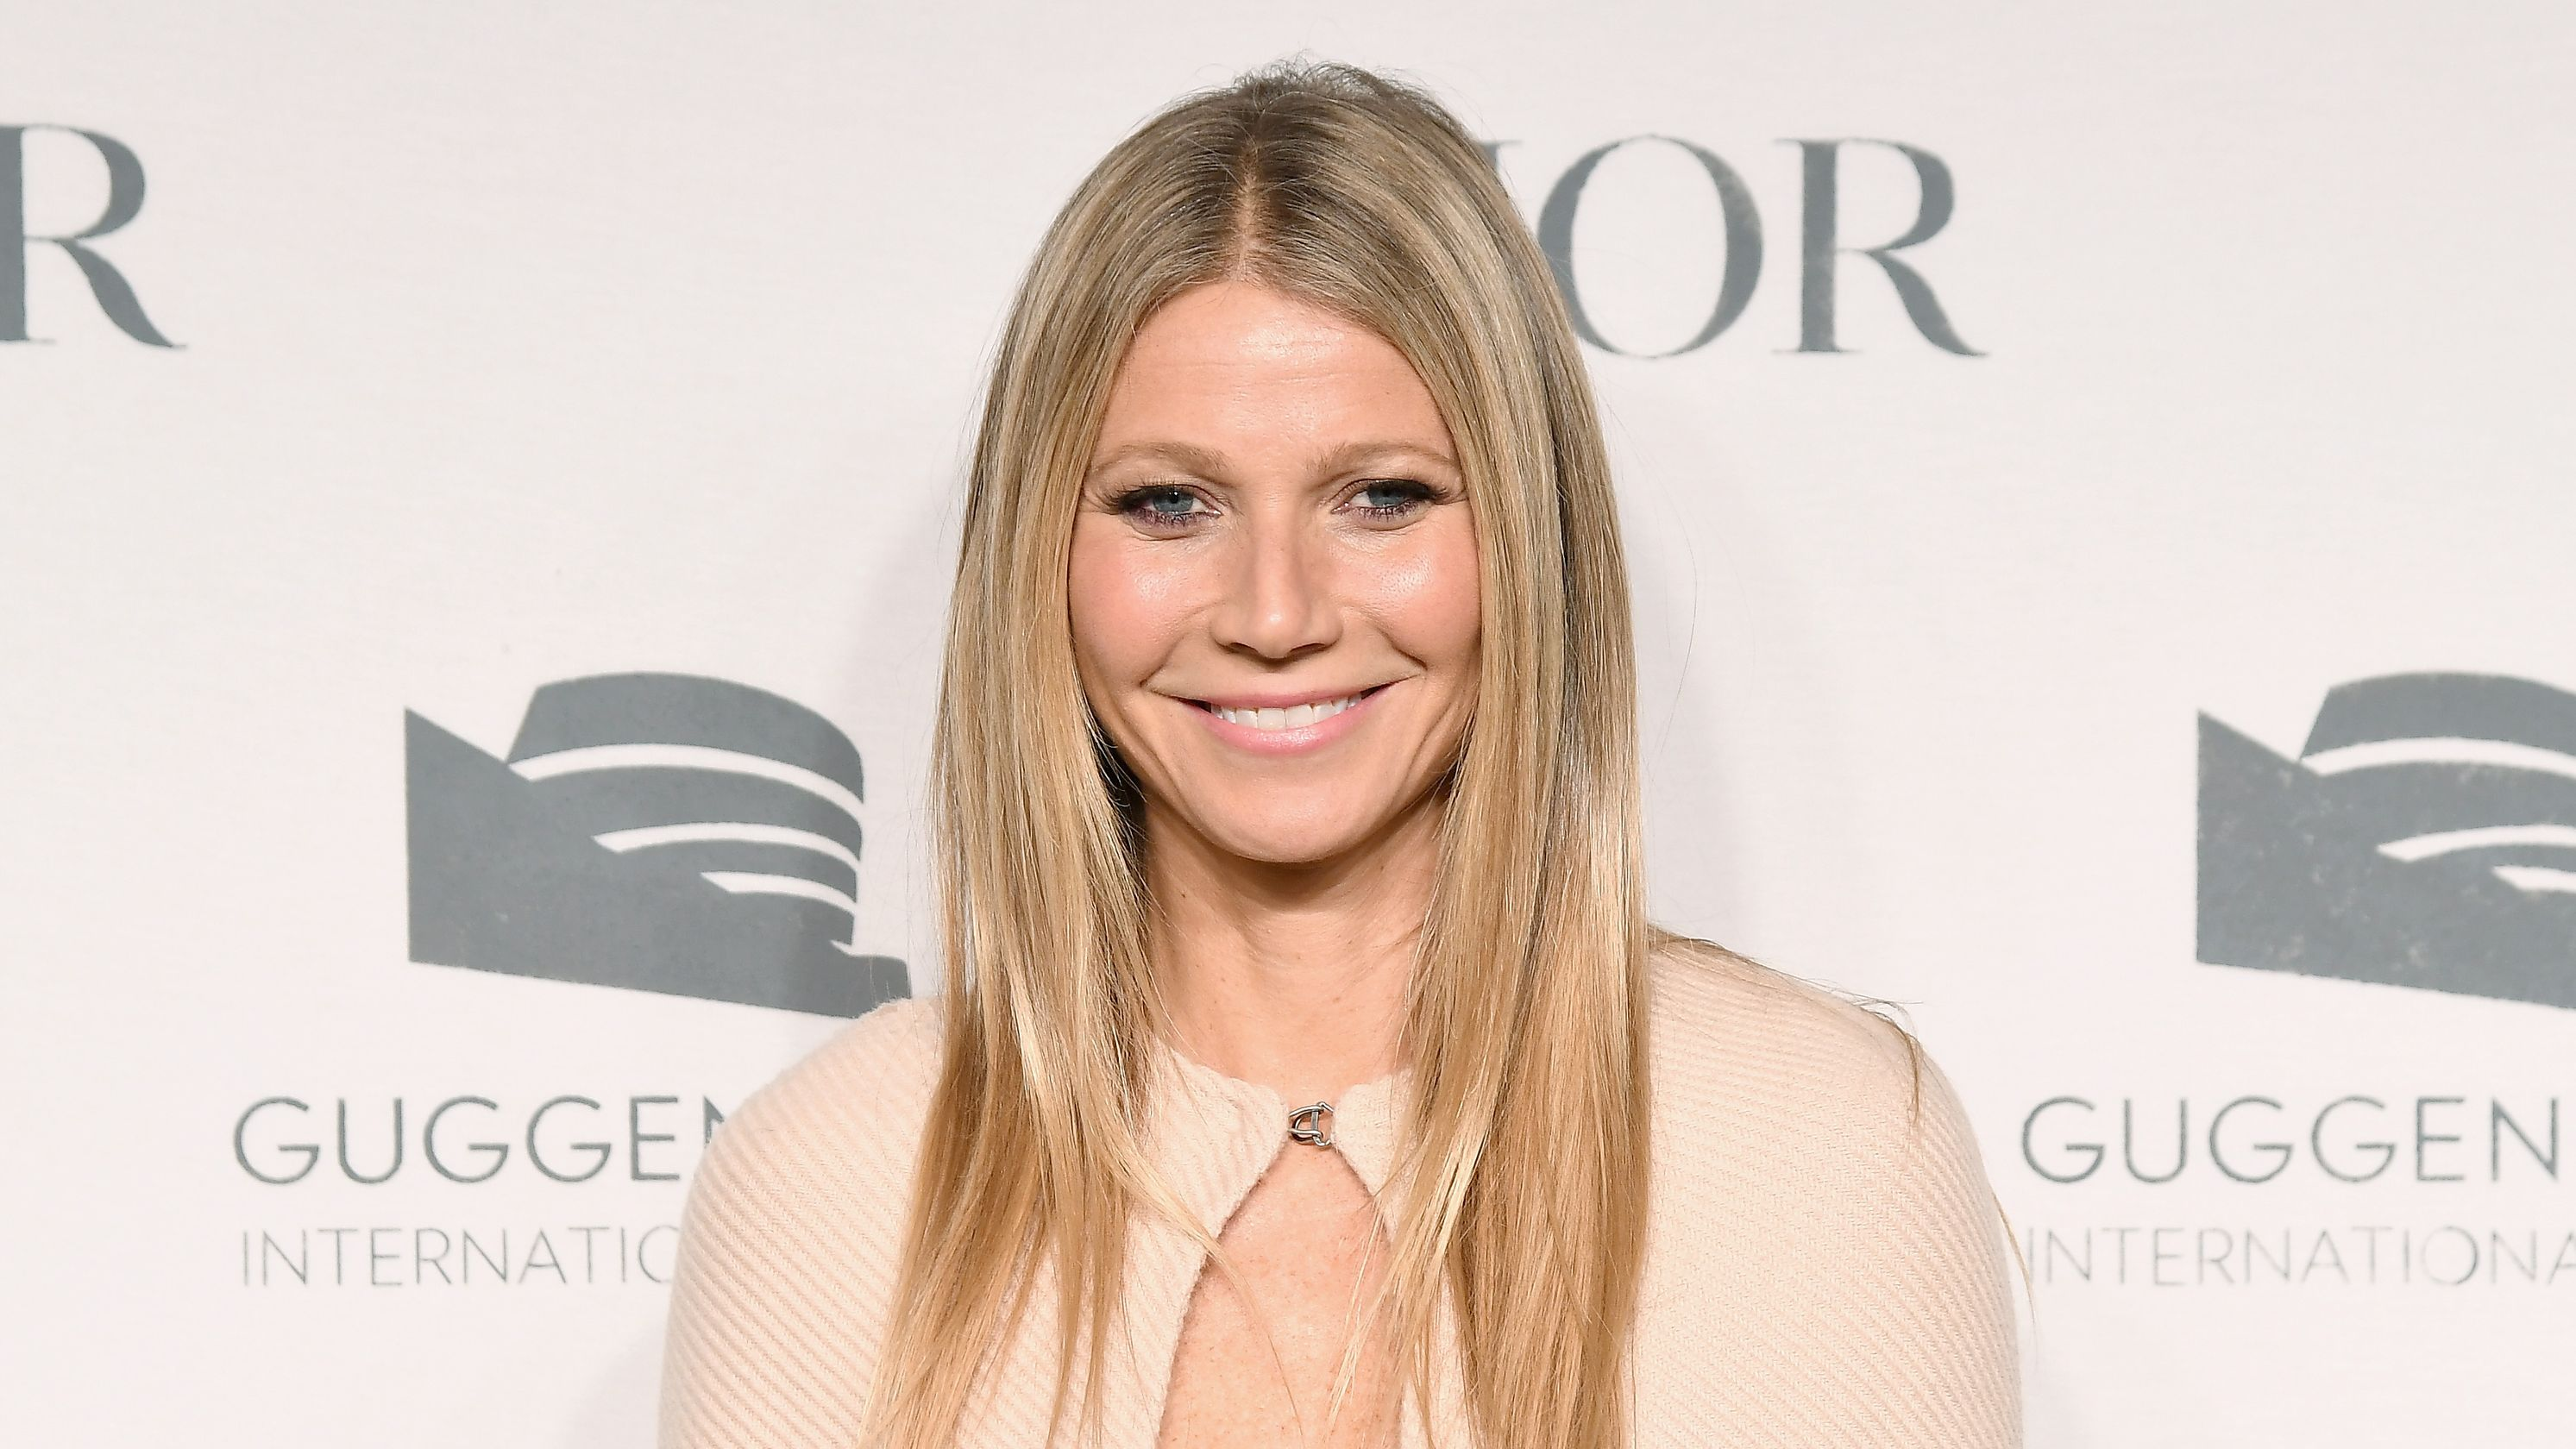 Gwyneth Paltrow serves up doable recipes in 'The Clean Plate' cookbook – seriously!